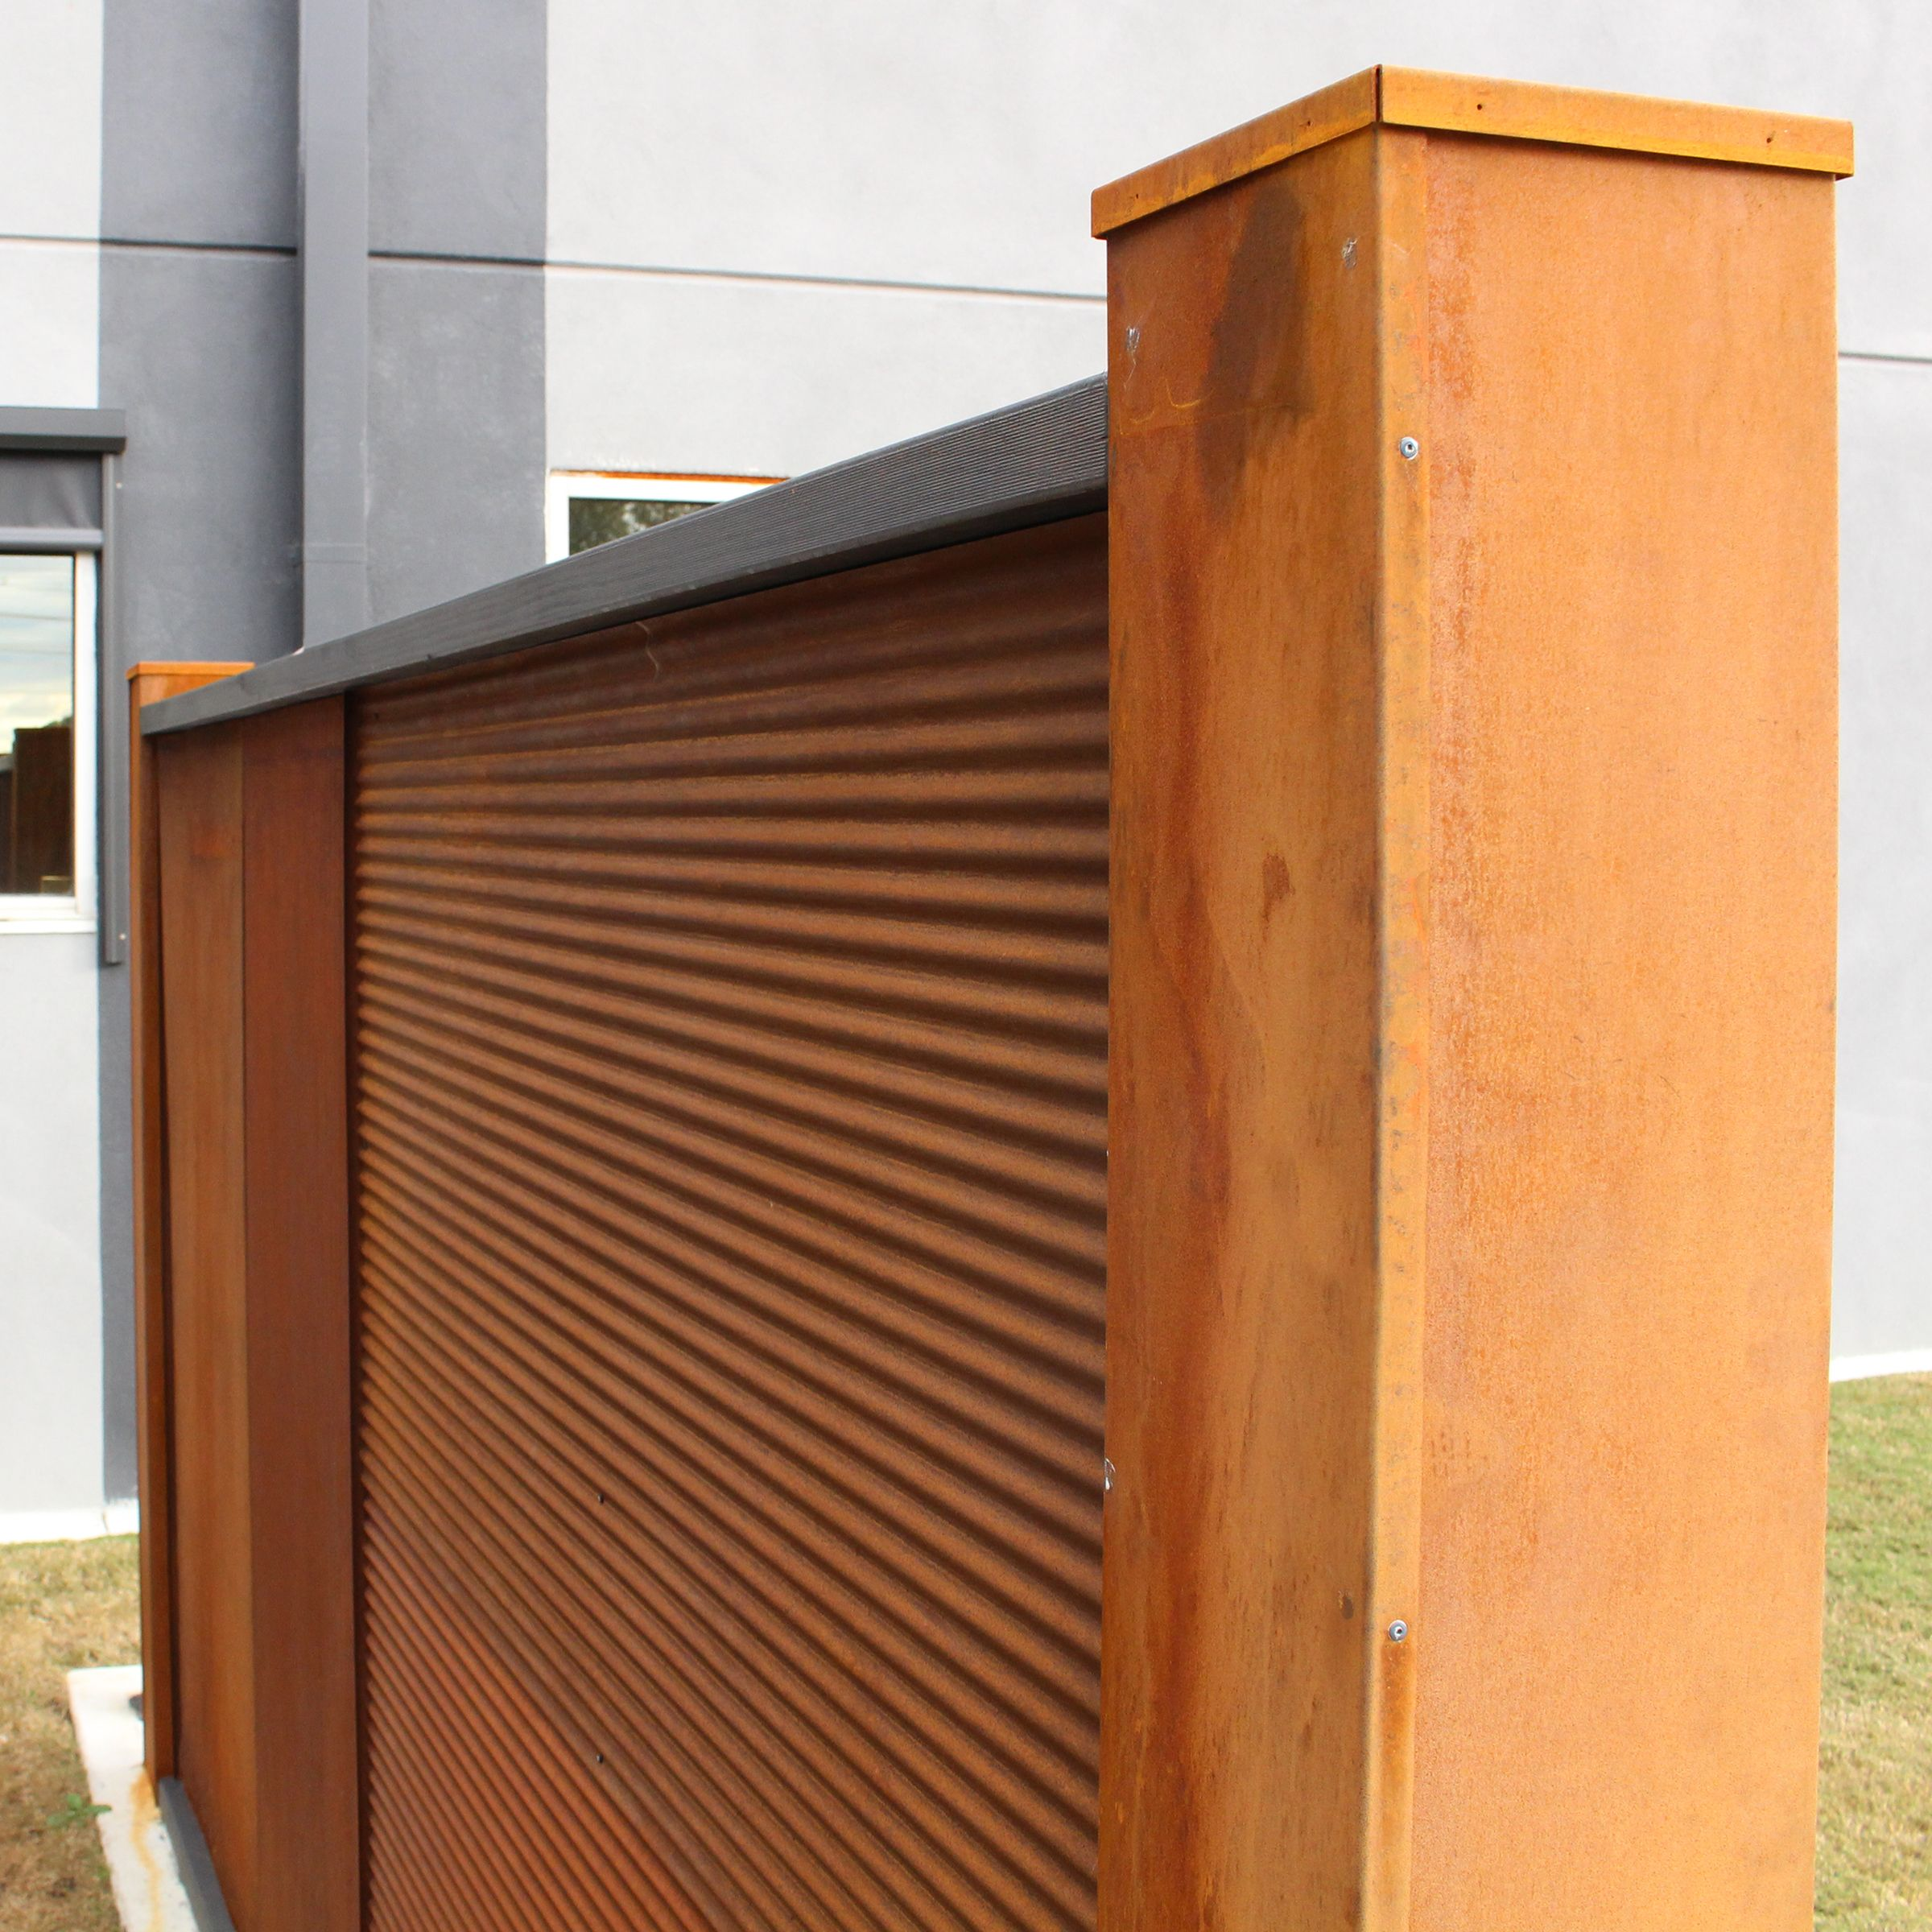 Chippy S Outdoor Stocks The Z Tina Mini Orb Corrugated Rust Metal Sheets These Are A Fantastic Rustic Addit Privacy Screen Outdoor Living Areas Rusted Metal